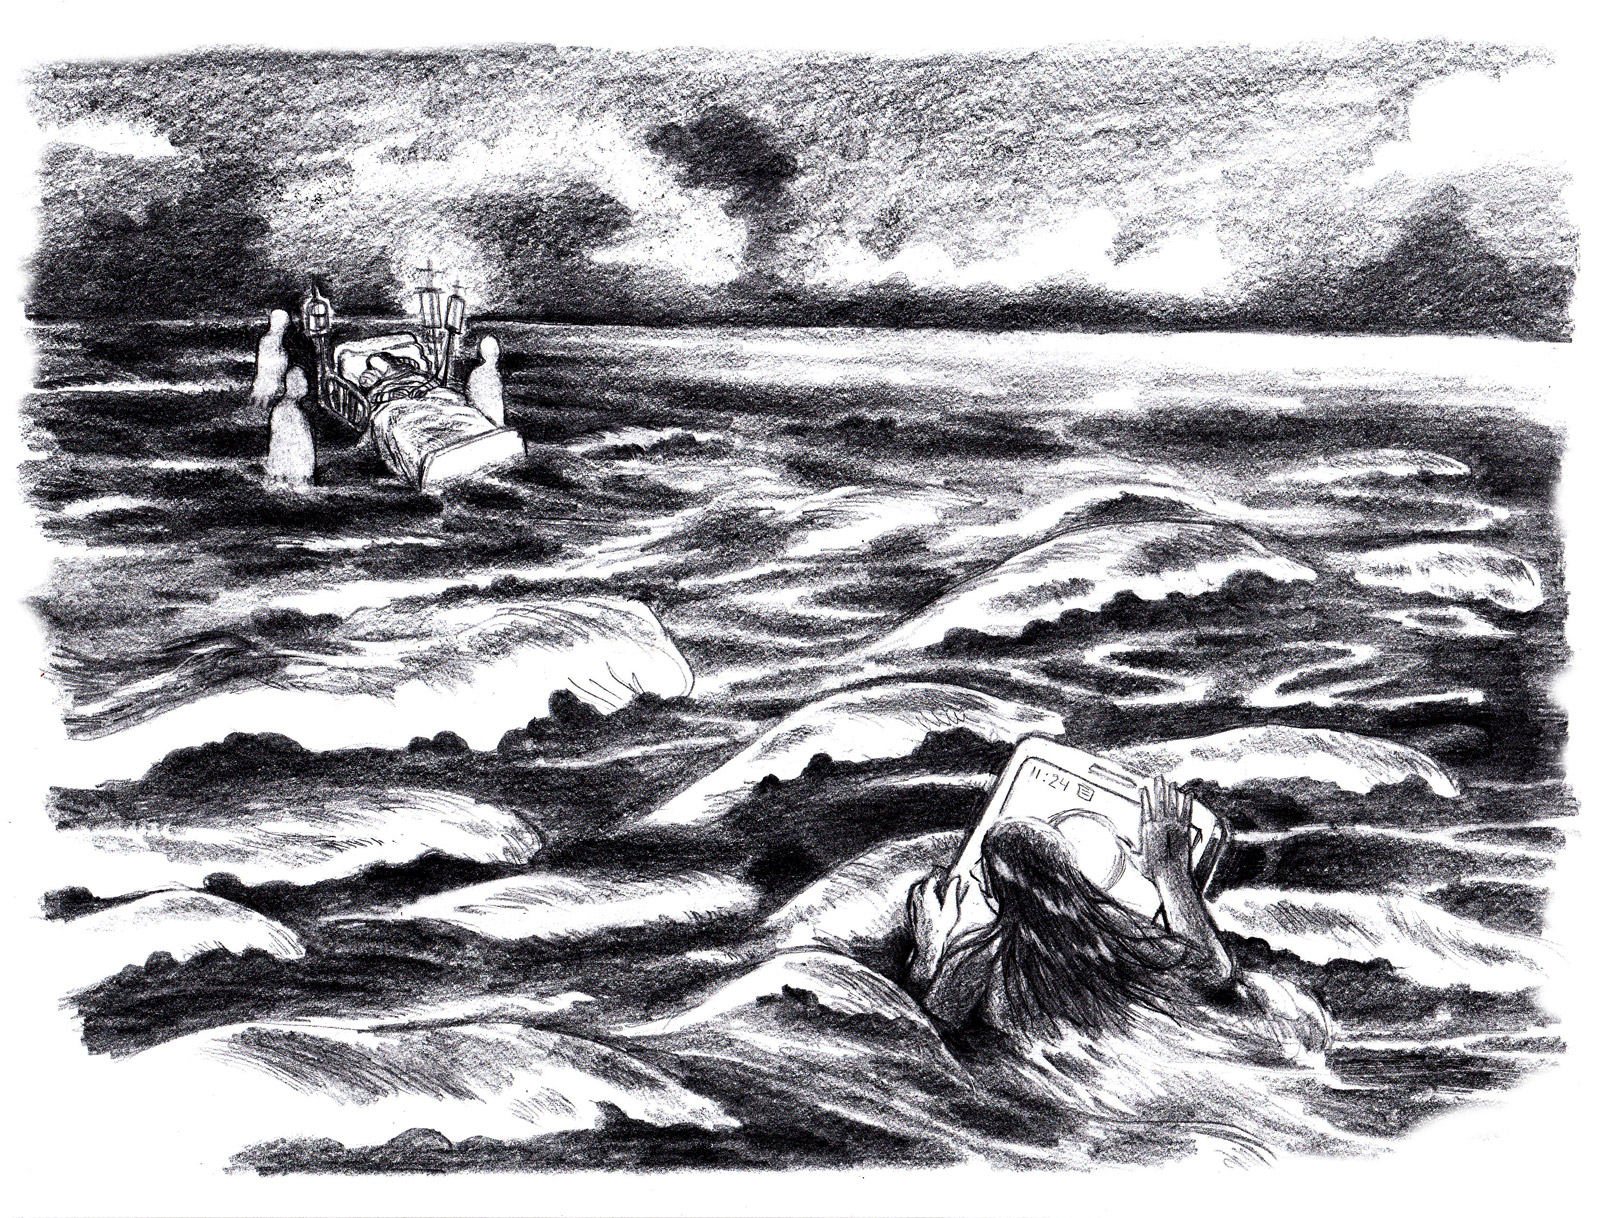 In a stormy sea, tossed by waves, a woman clings to a mobile phone to stay afloat. In the distance there is a hospital bed surrounded by nurses. Her grandmother lays on the bed. She is too far away to be reached.